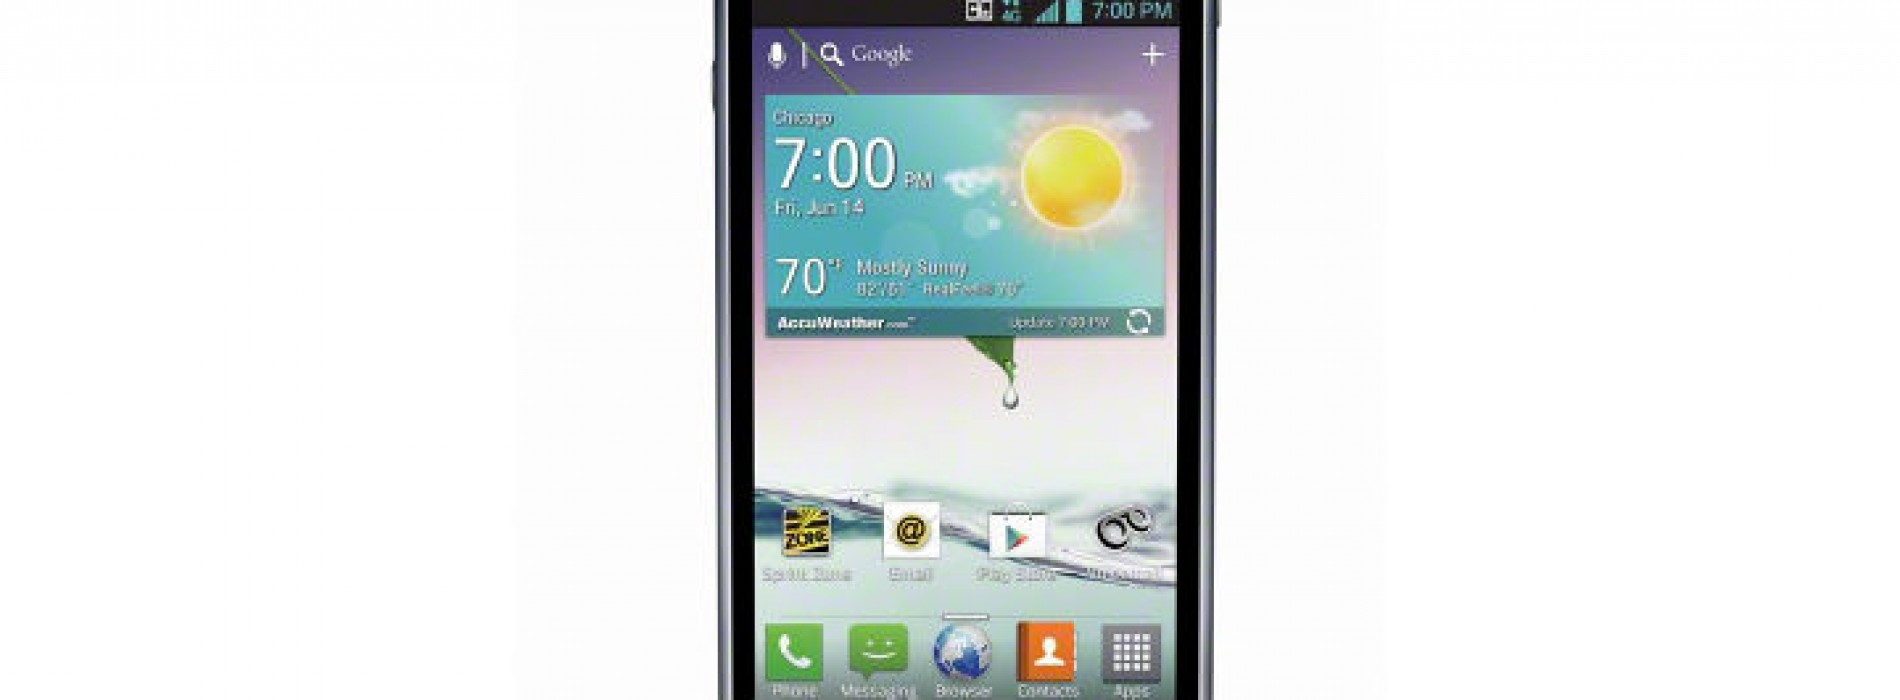 Sprint dials up LG Optimus F3 for visually impaired demographic